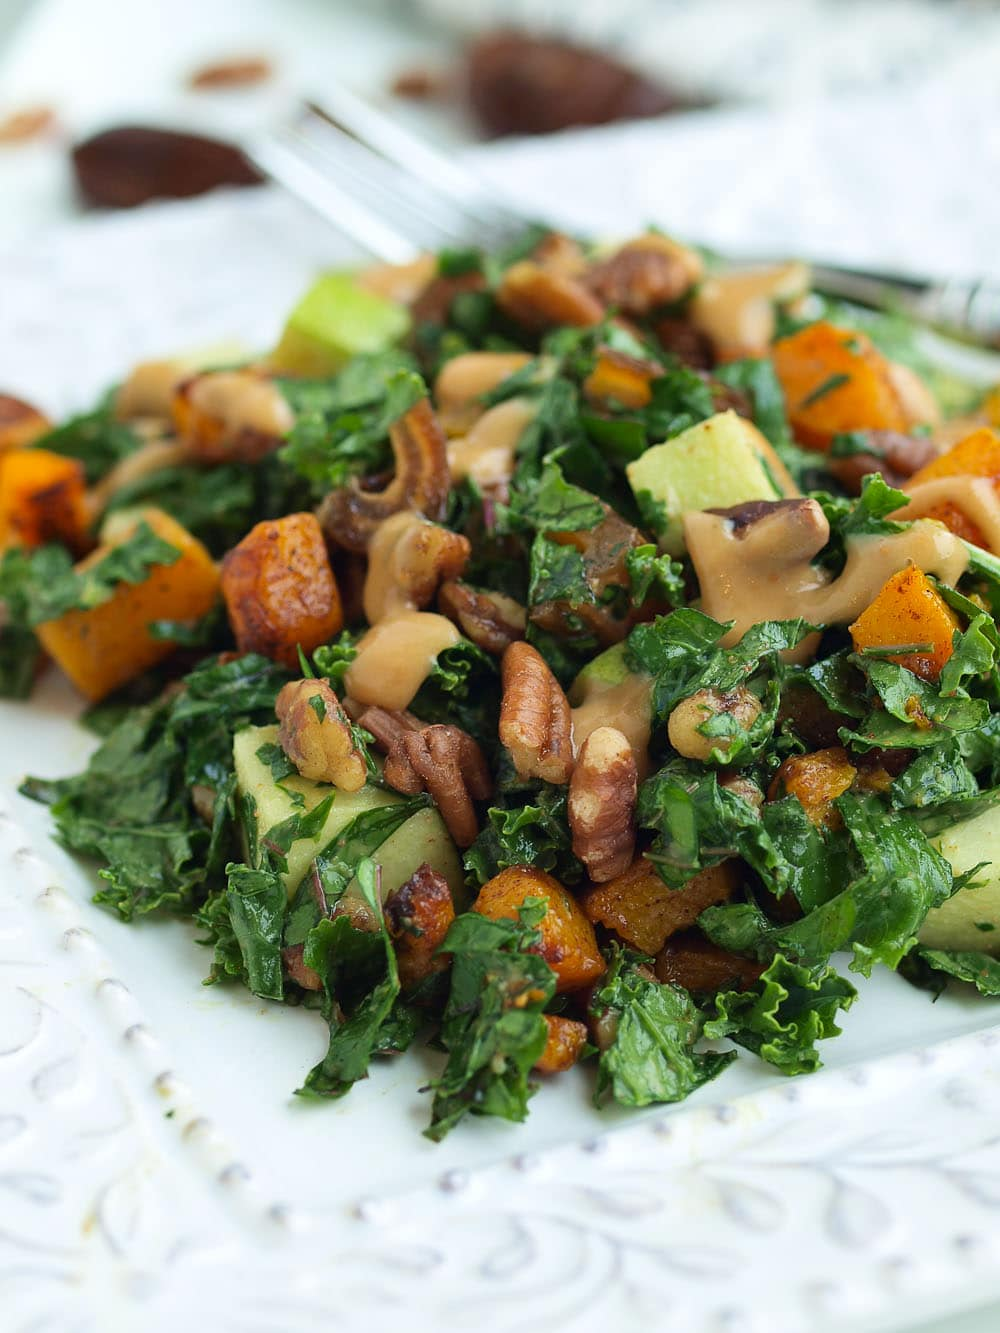 Autumn Kale Salad Recipe. This easy kale salad recipe will make your family beg them to serve them kale! The oil-free dressing is AMAZING. Gluten-free and vegan recipe.